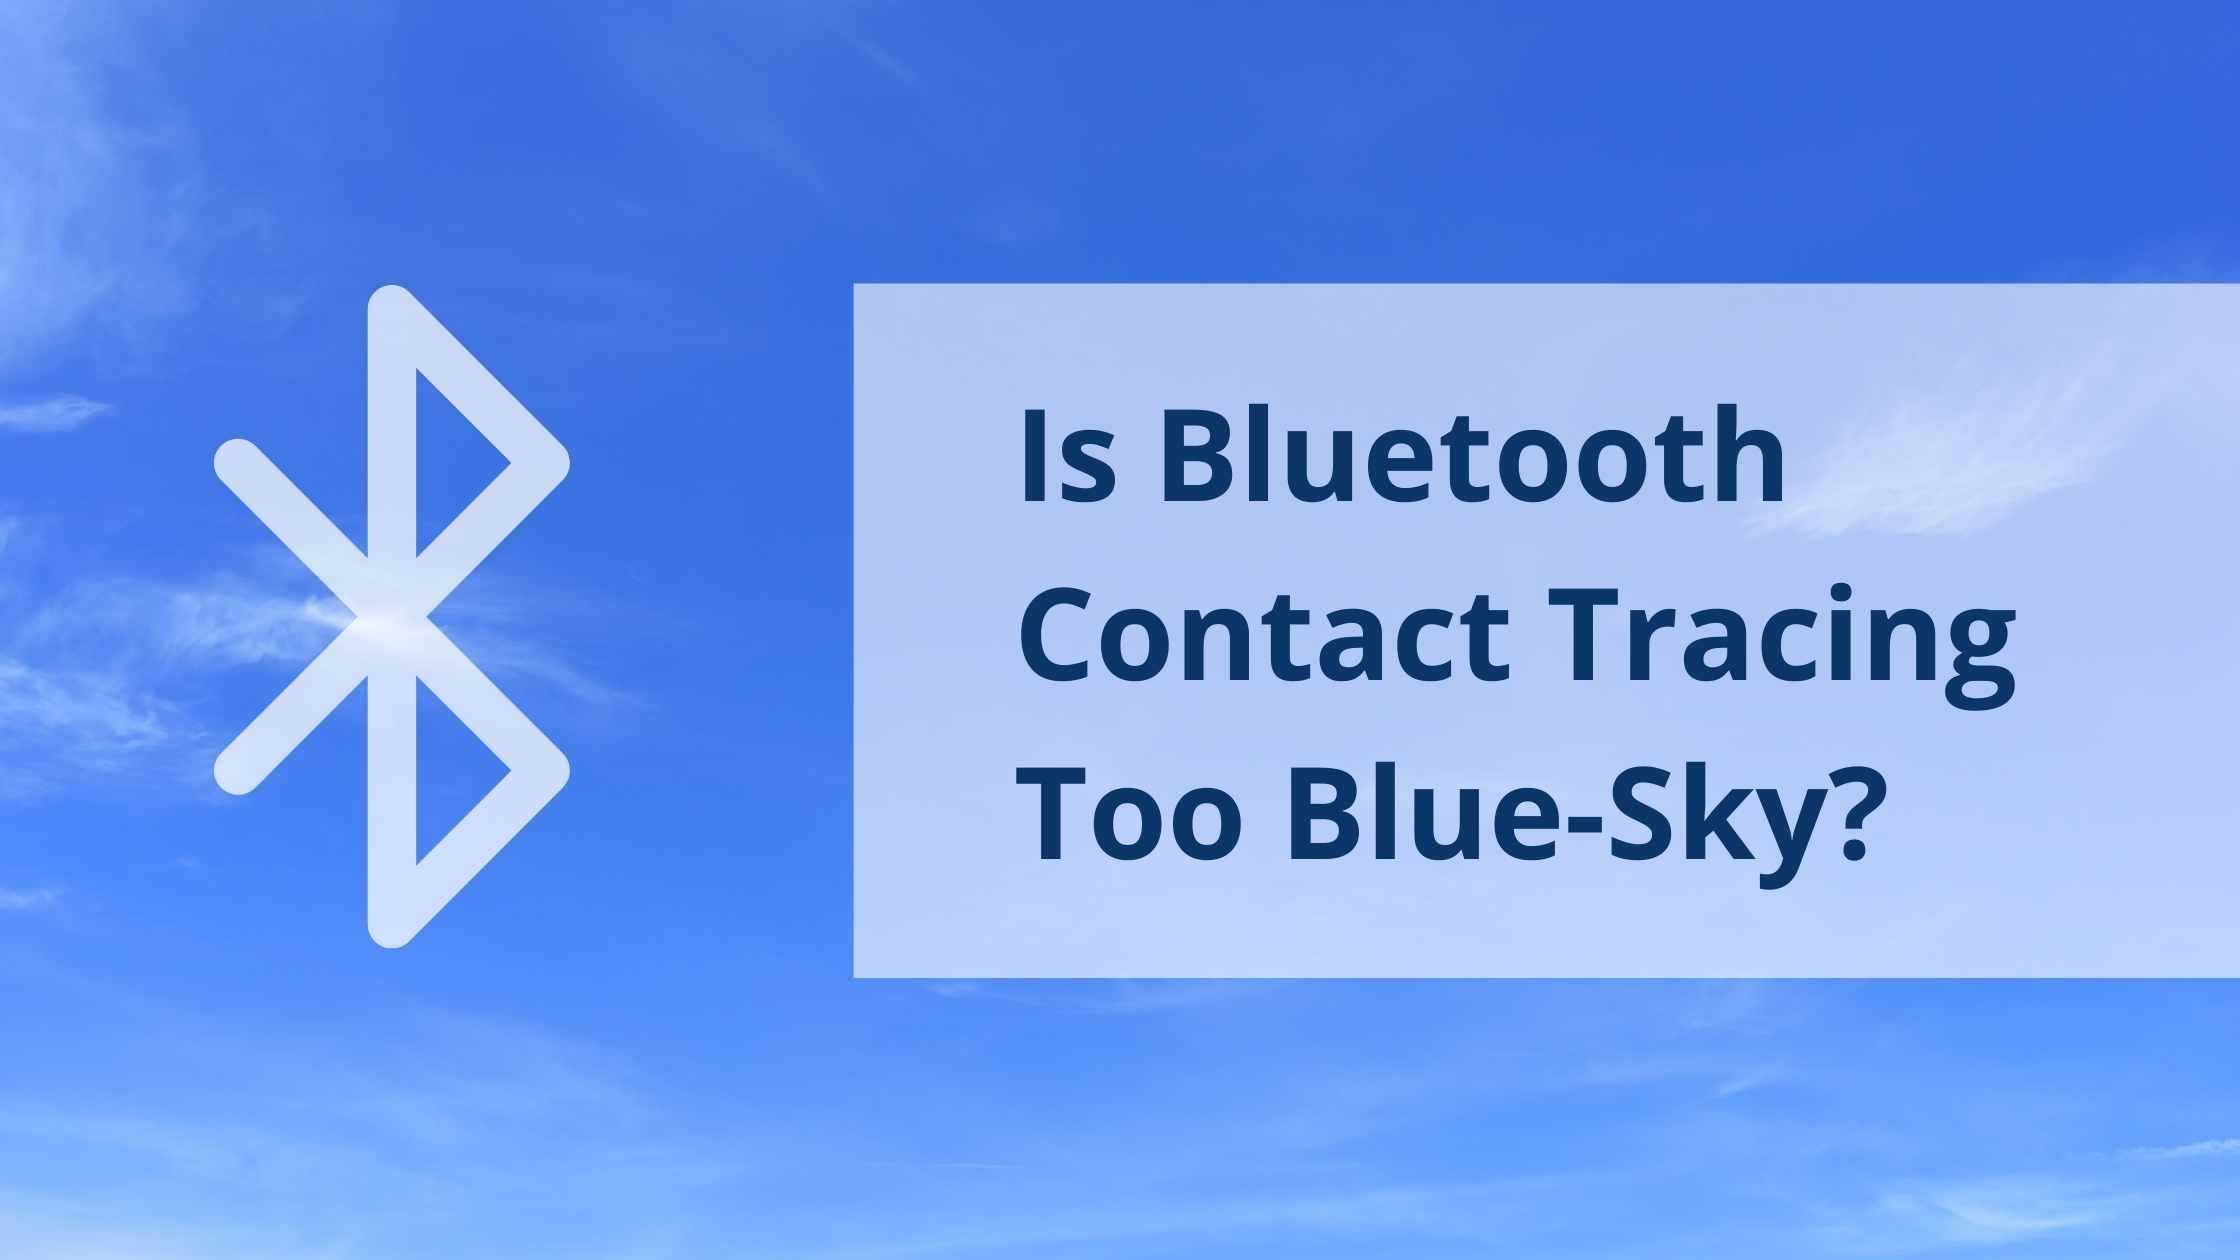 Blue-Sky Concept; Background image of blue sky with light clouds, overlaid with Bluetooth logo and text 'Is Bluetooth Contact Tracing Too Blue-Sky?'